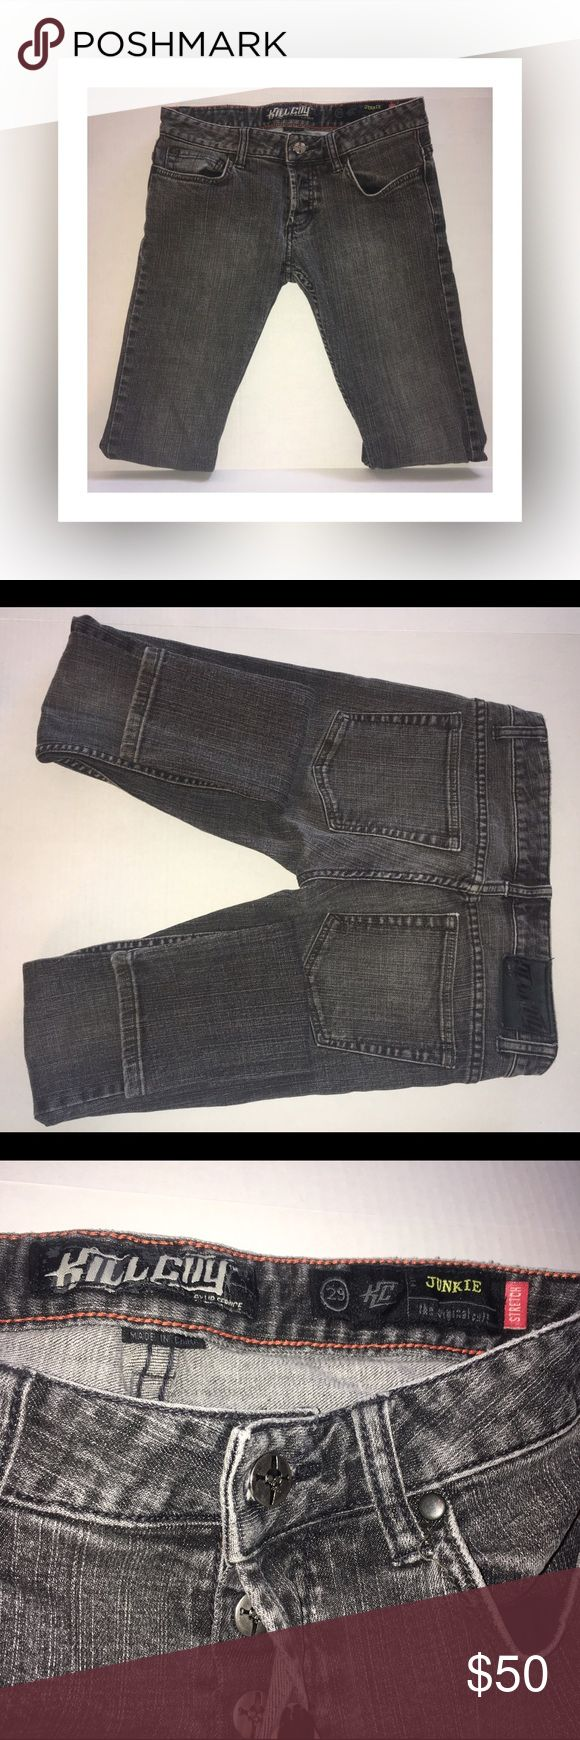 Kill City Junkie Jeans Great condition! ✨ Junkie Fit! ✨ Kill City! ✨ Size: 29! ✨ Kill City Jeans